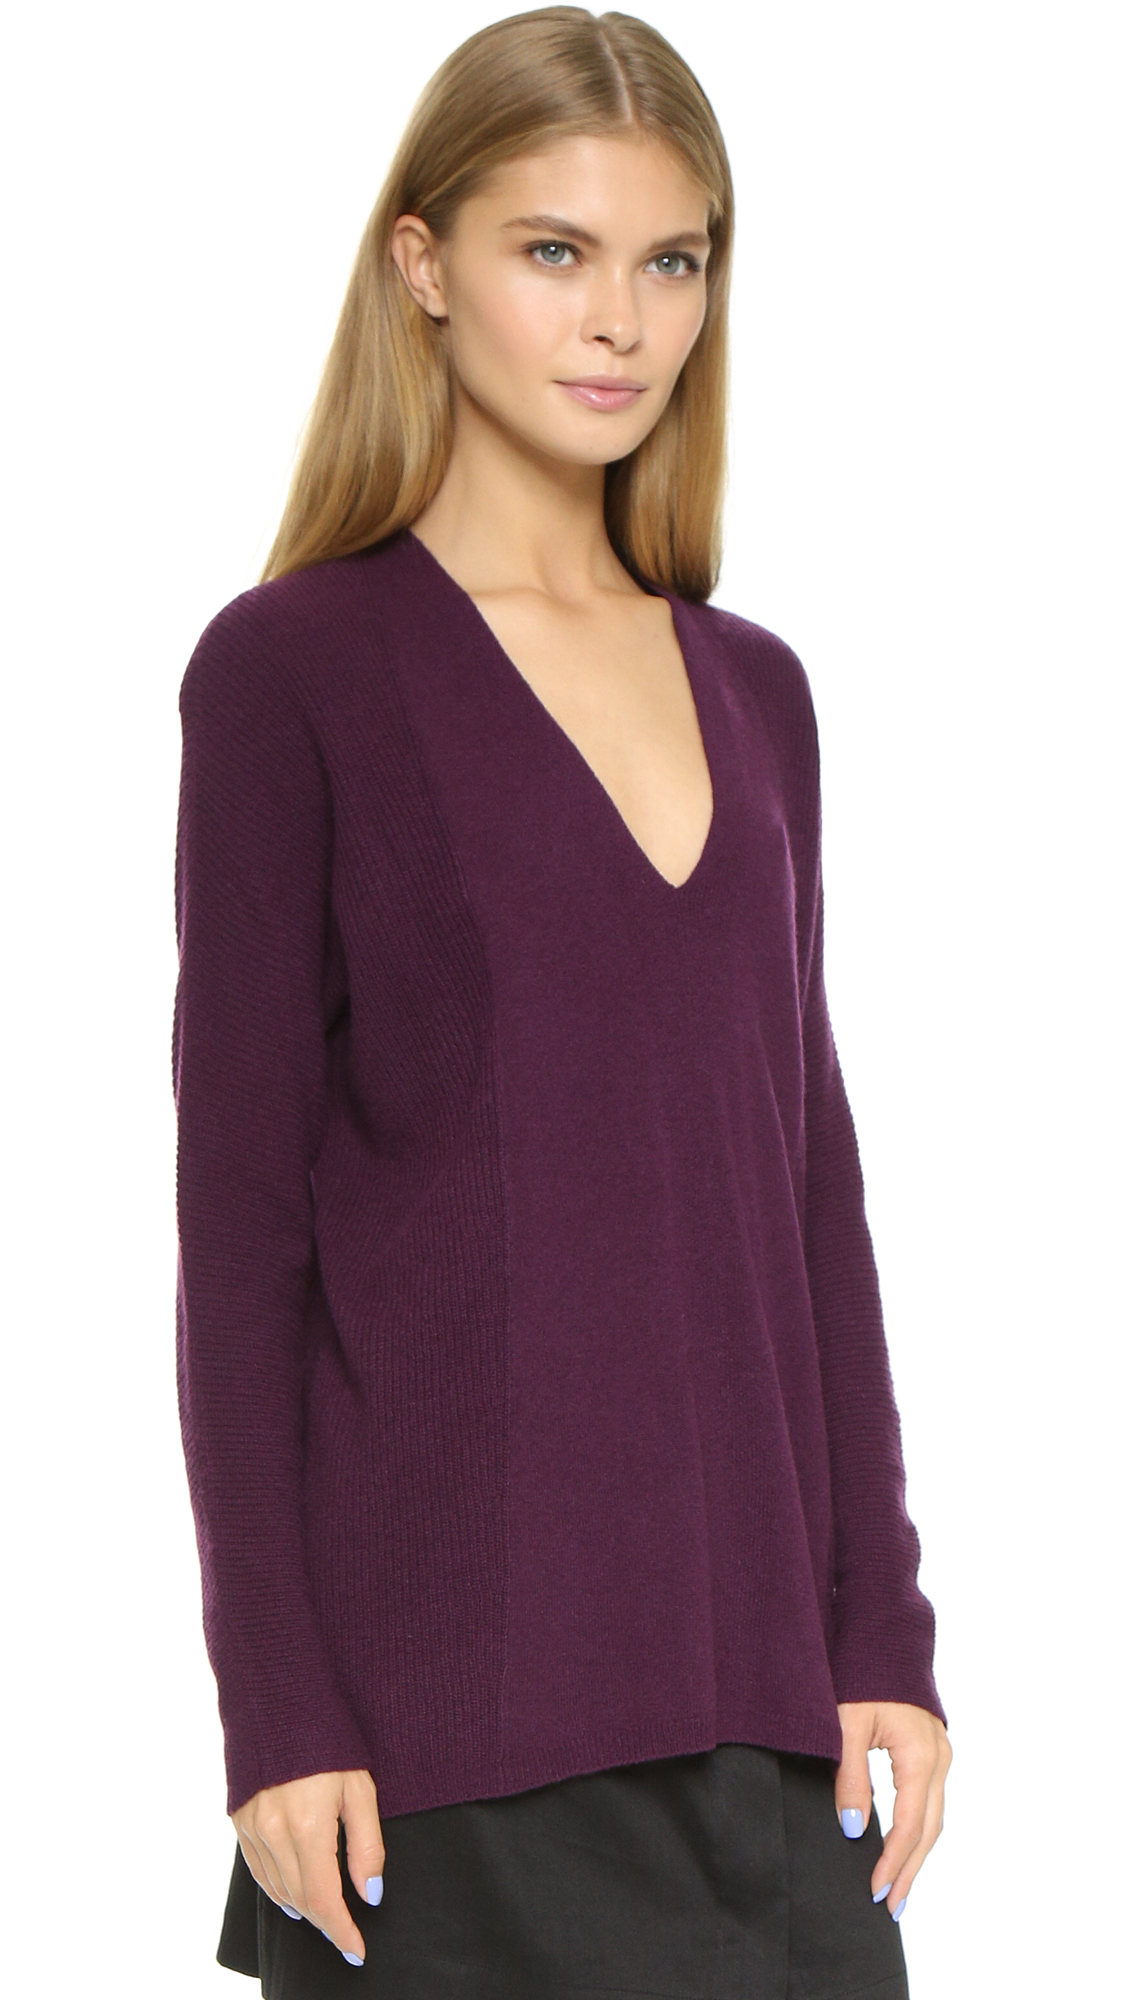 Vince Directional Rib Cashmere Sweater - Concord in Purple | Lyst